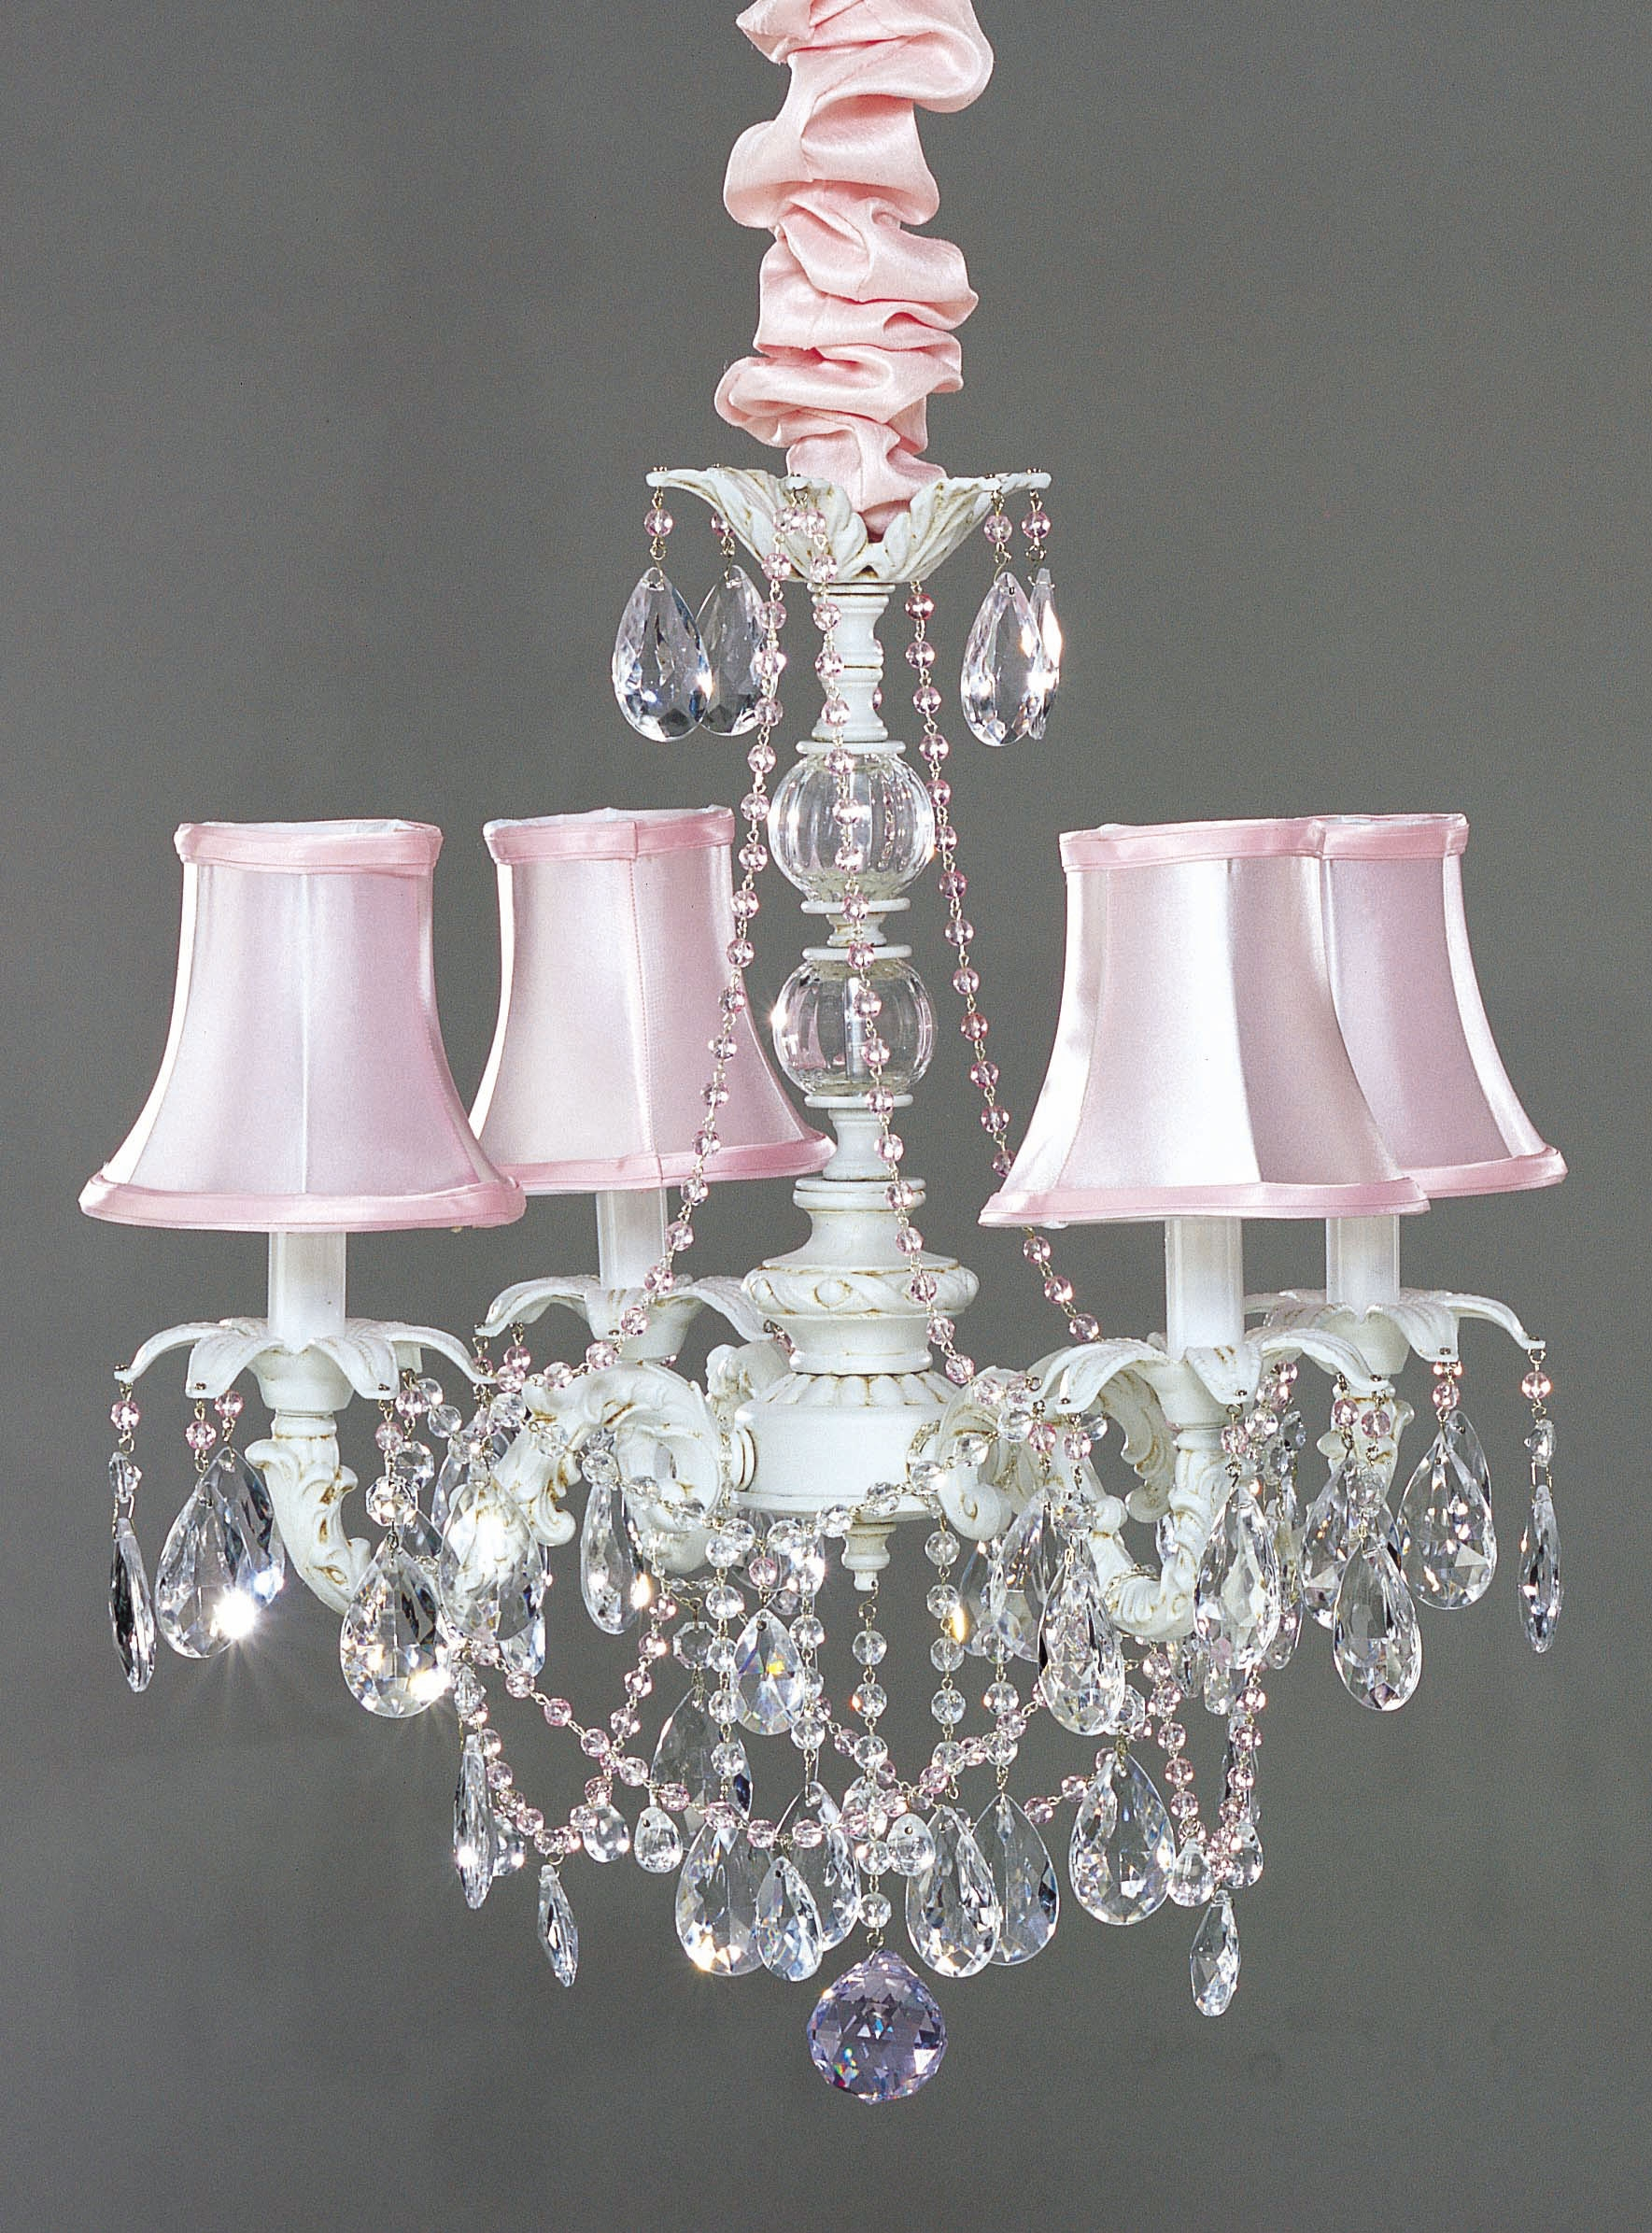 I Lite 4 U Shab Chic Style Mini Chandeliers Lighting Intended For Shabby Chic Chandeliers (View 7 of 15)